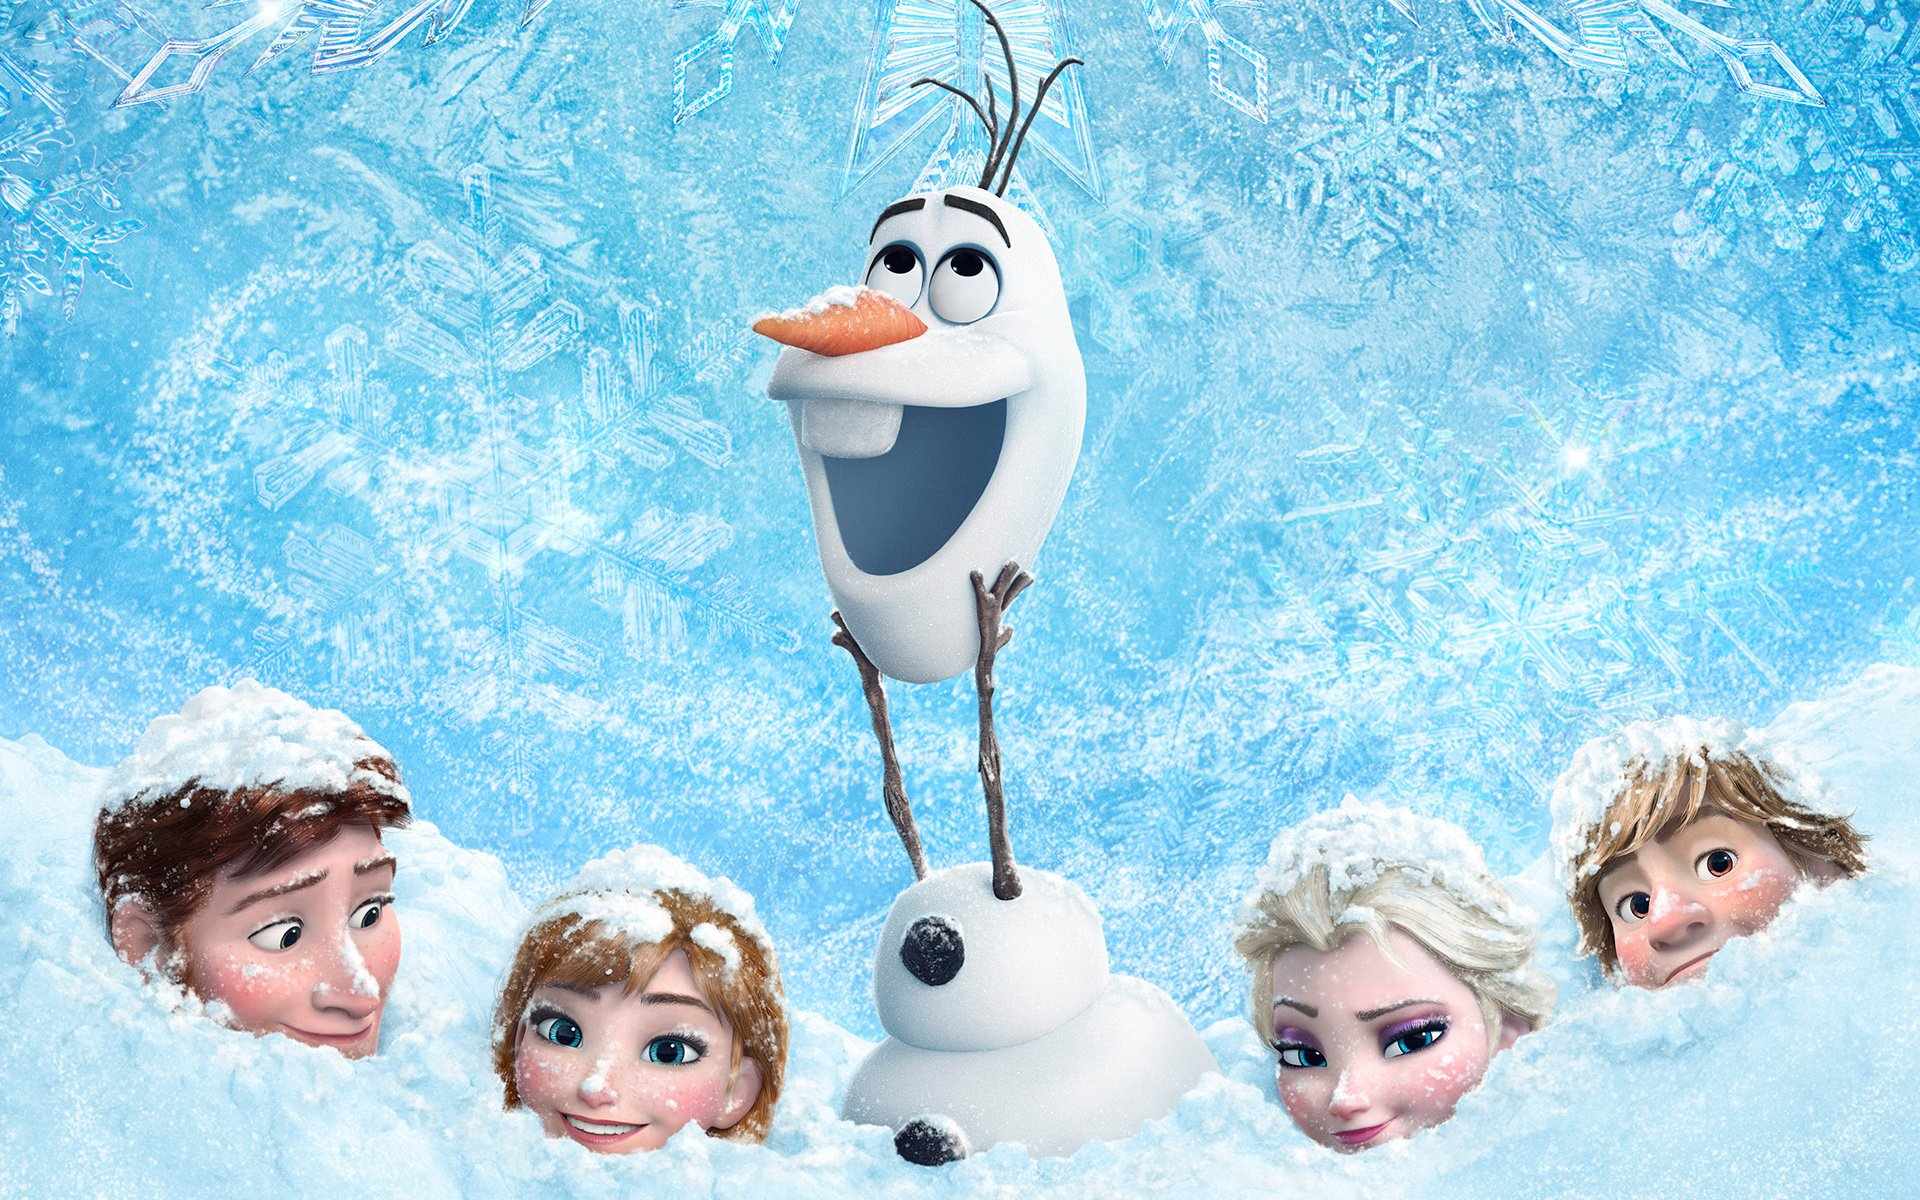 Dsiney Frozen Wallpapers HD Wallpapers 1920x1200